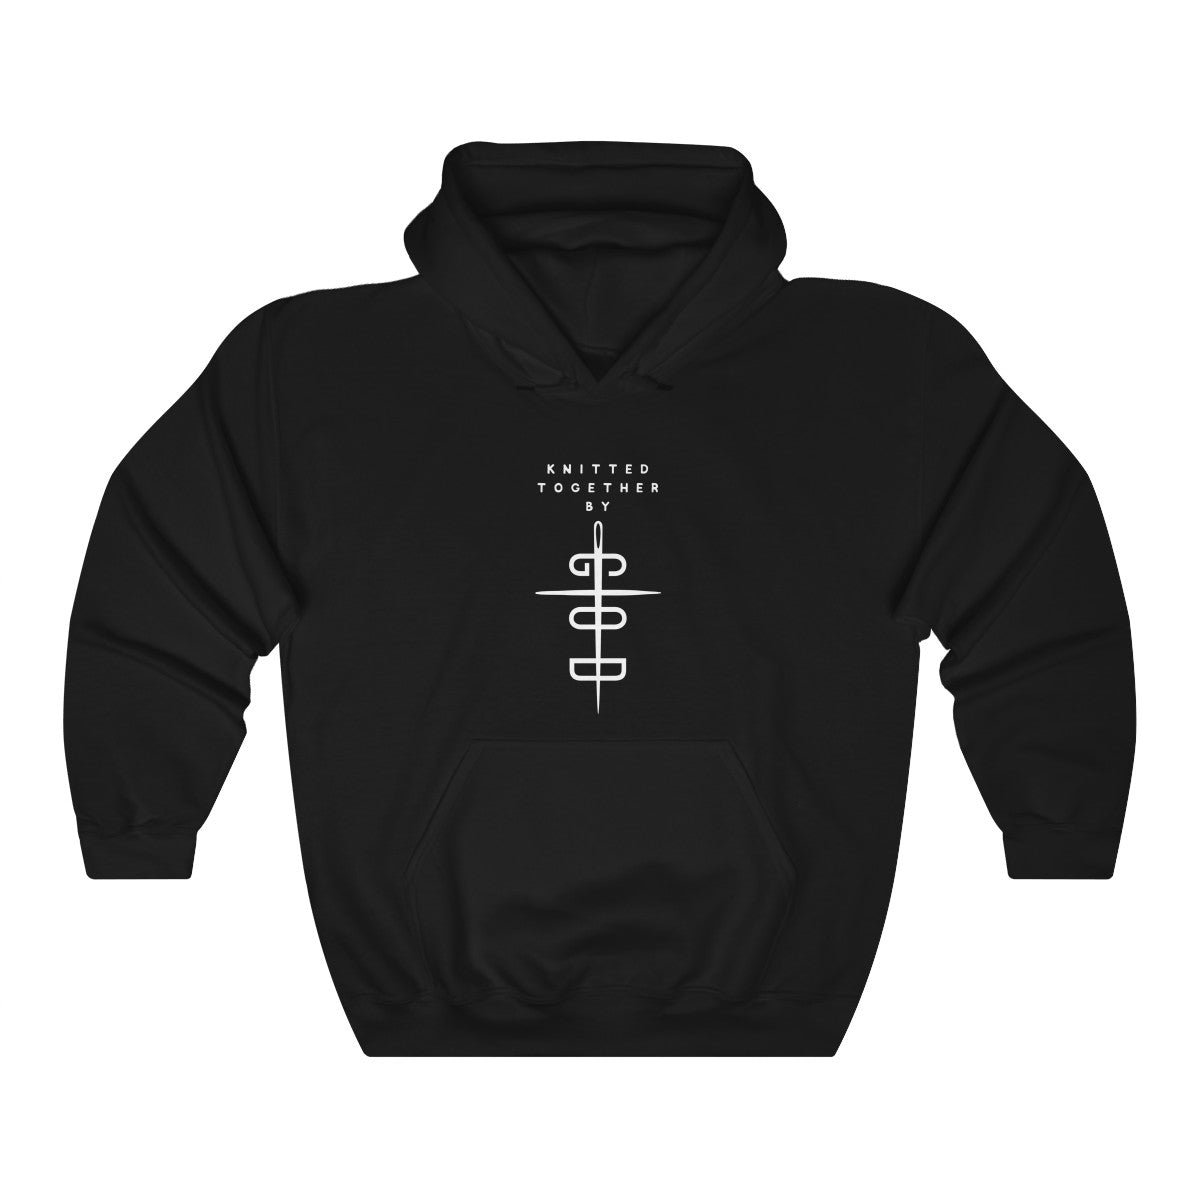 Knitted Together By God Unisex Heavy Blend™ Hooded Sweatshirt